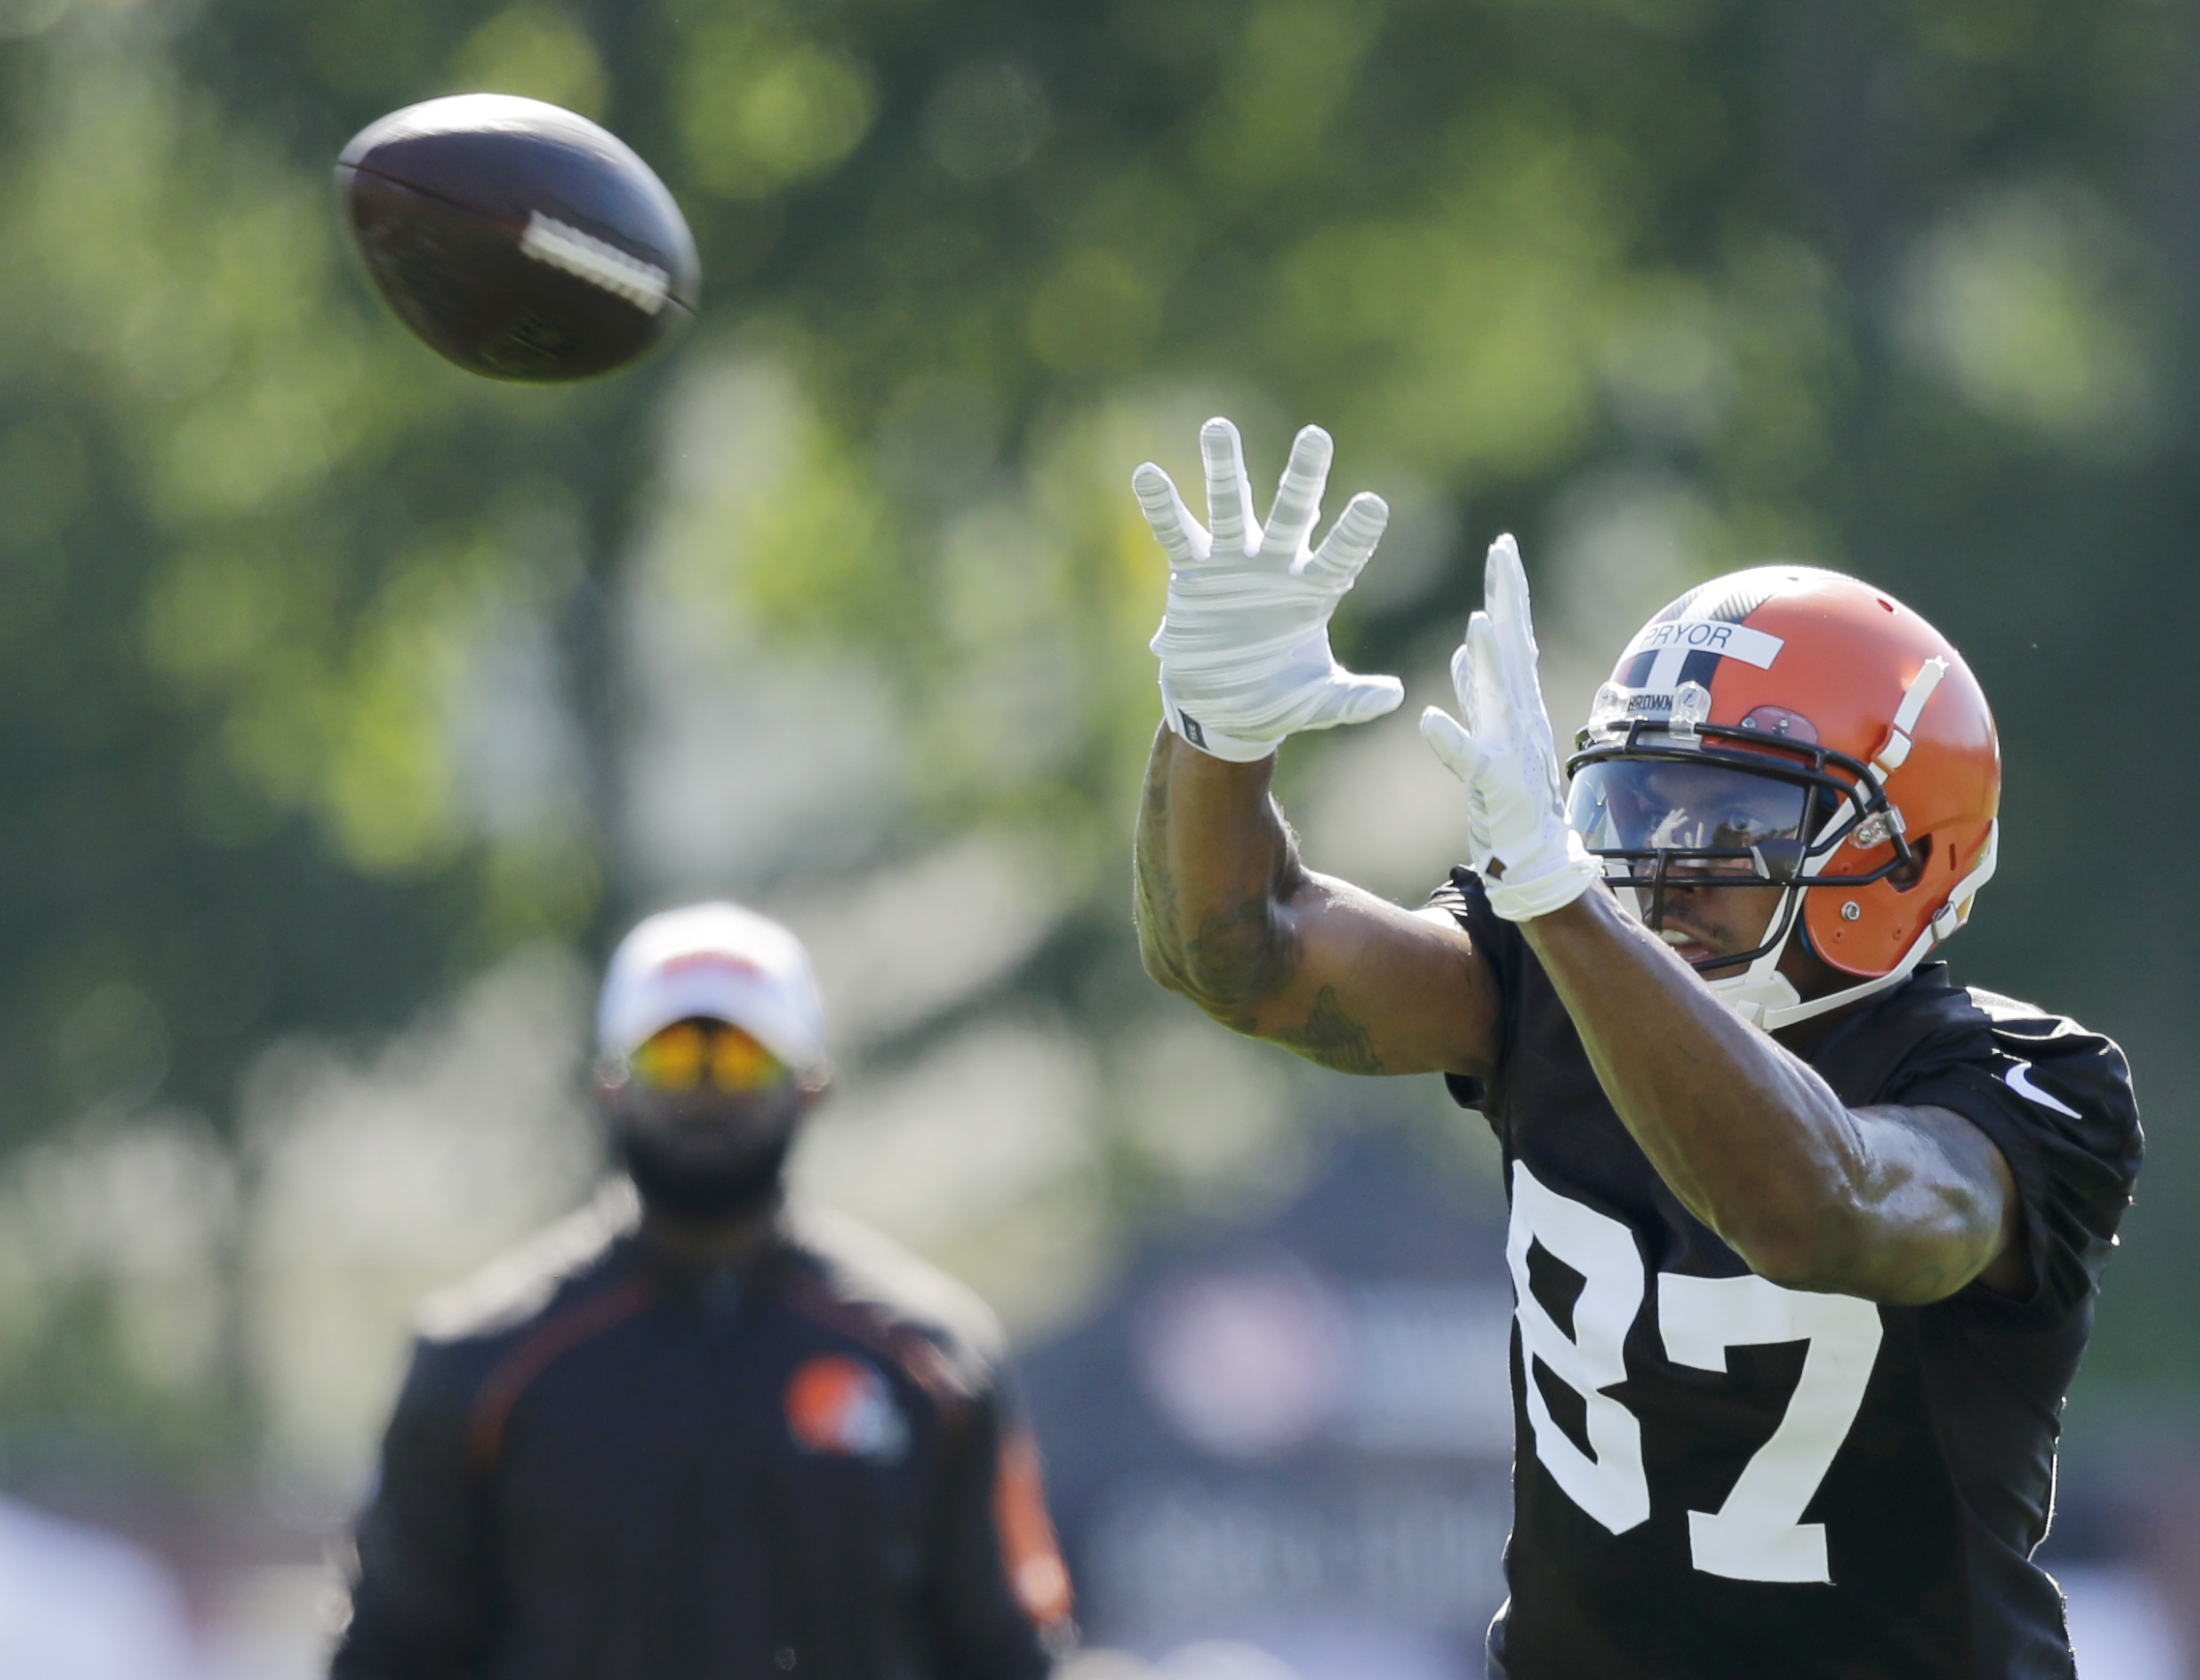 FILE - In this July 30, 2015 file photo, Cleveland Browns wide receiver Terrelle Pryor catches a pass during practice at the NFL football team's training camp, in Berea, Ohio. Pryor has returned to practice after missing more than a week of training camp